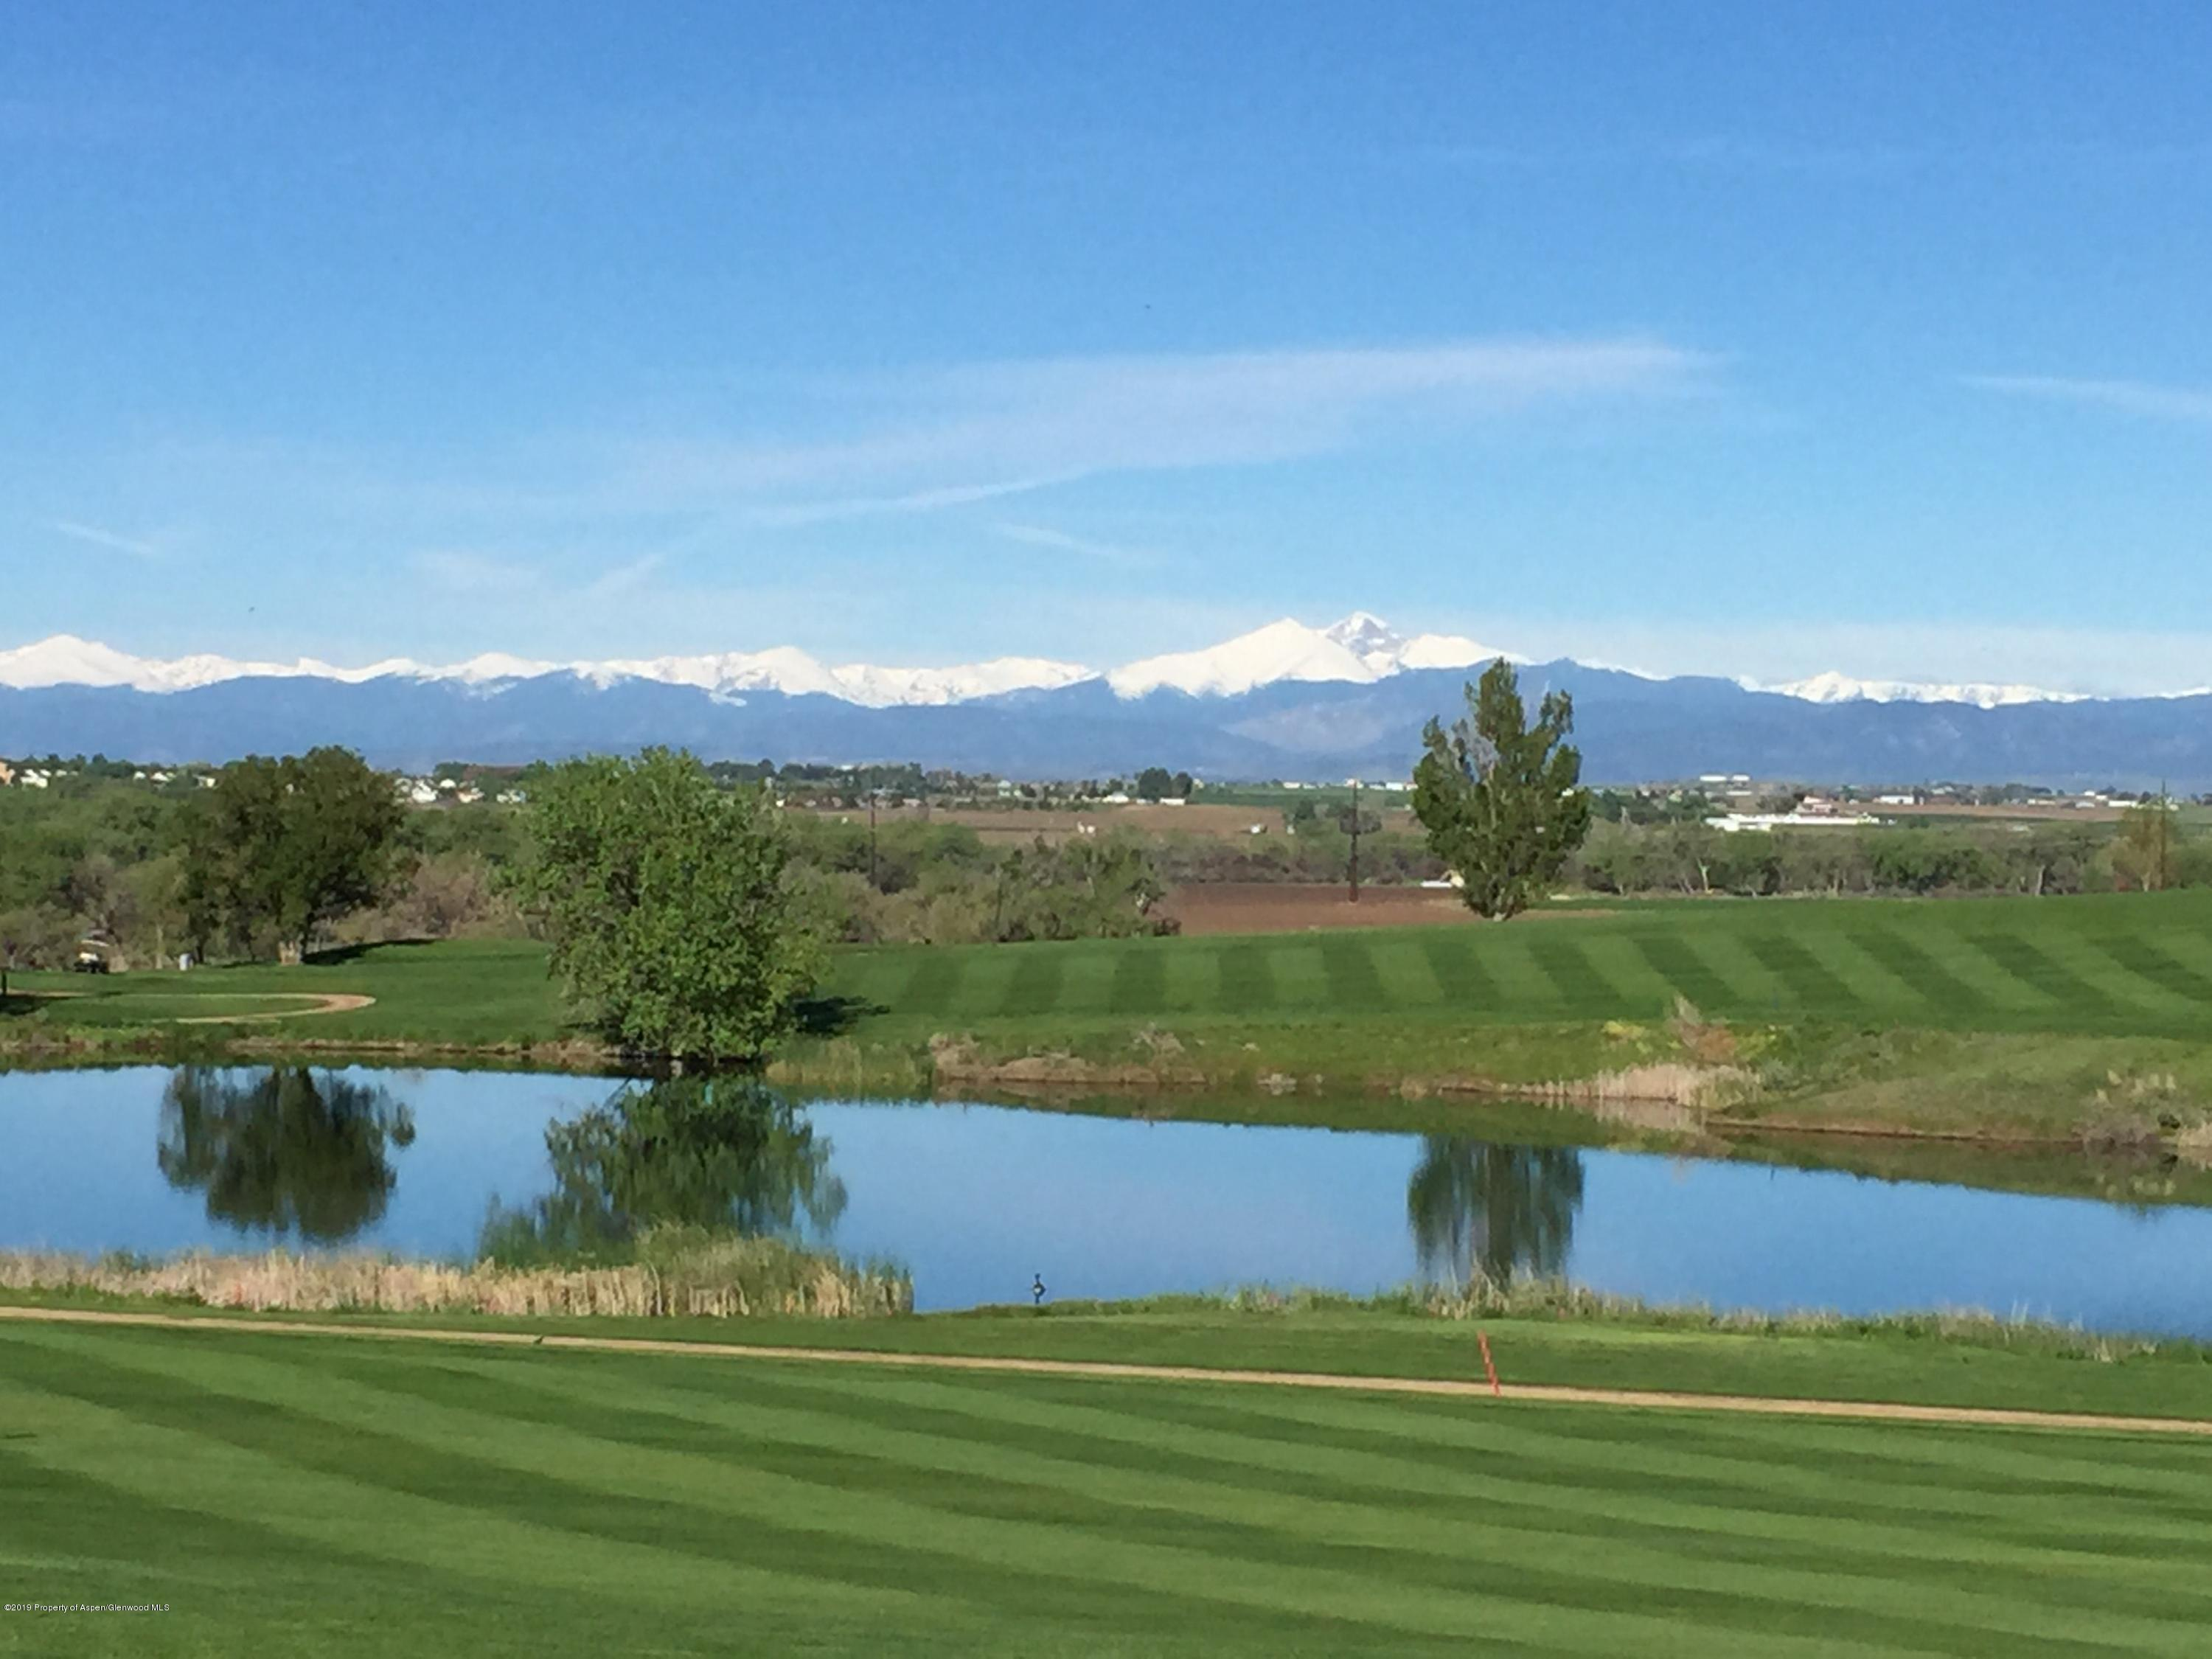 2100 Country Club - Milliken, Colorado